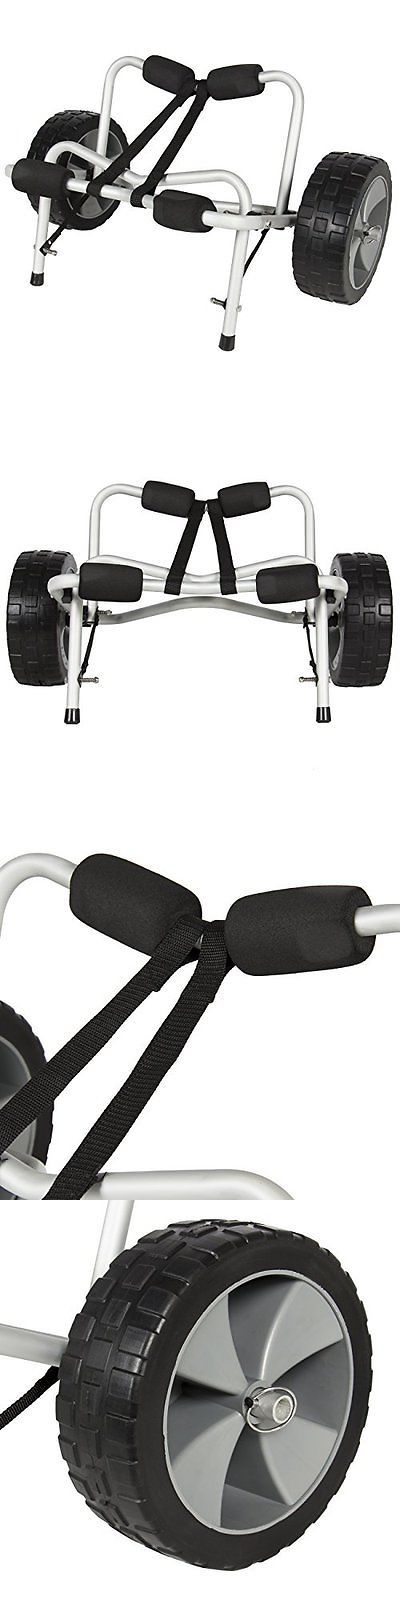 Accessories 87089: Boat Kayak Canoe Carrier Dolly Trailer Tote Trolley Transport Cart Wheel -> BUY IT NOW ONLY: $56.38 on eBay!